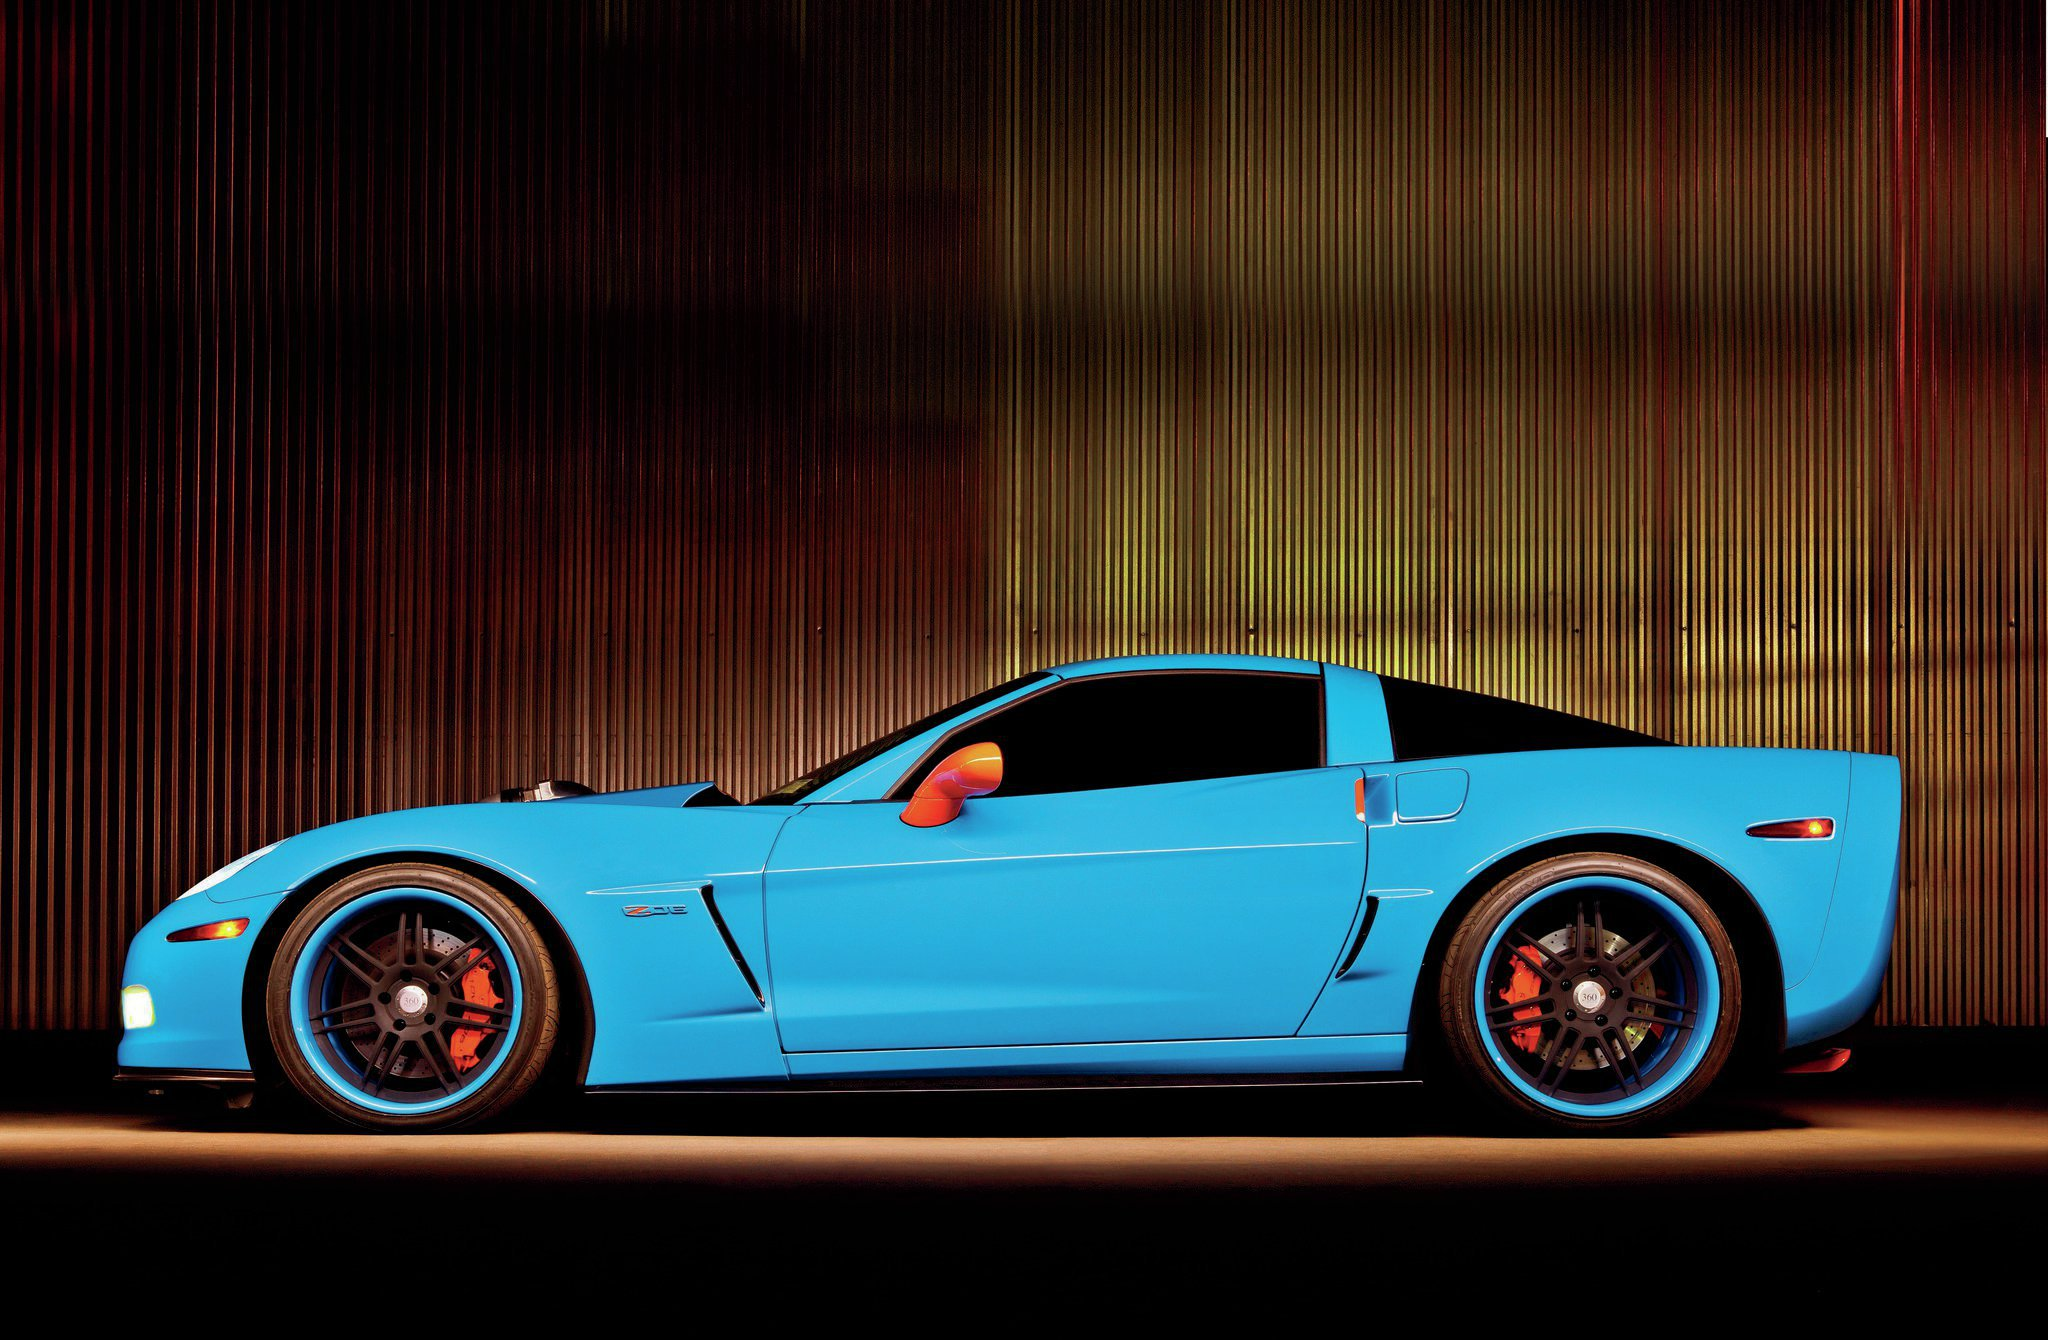 Beau Hurley's 2007 Chevrolet Corvette Z06 is a Bad Habit Worth Driving